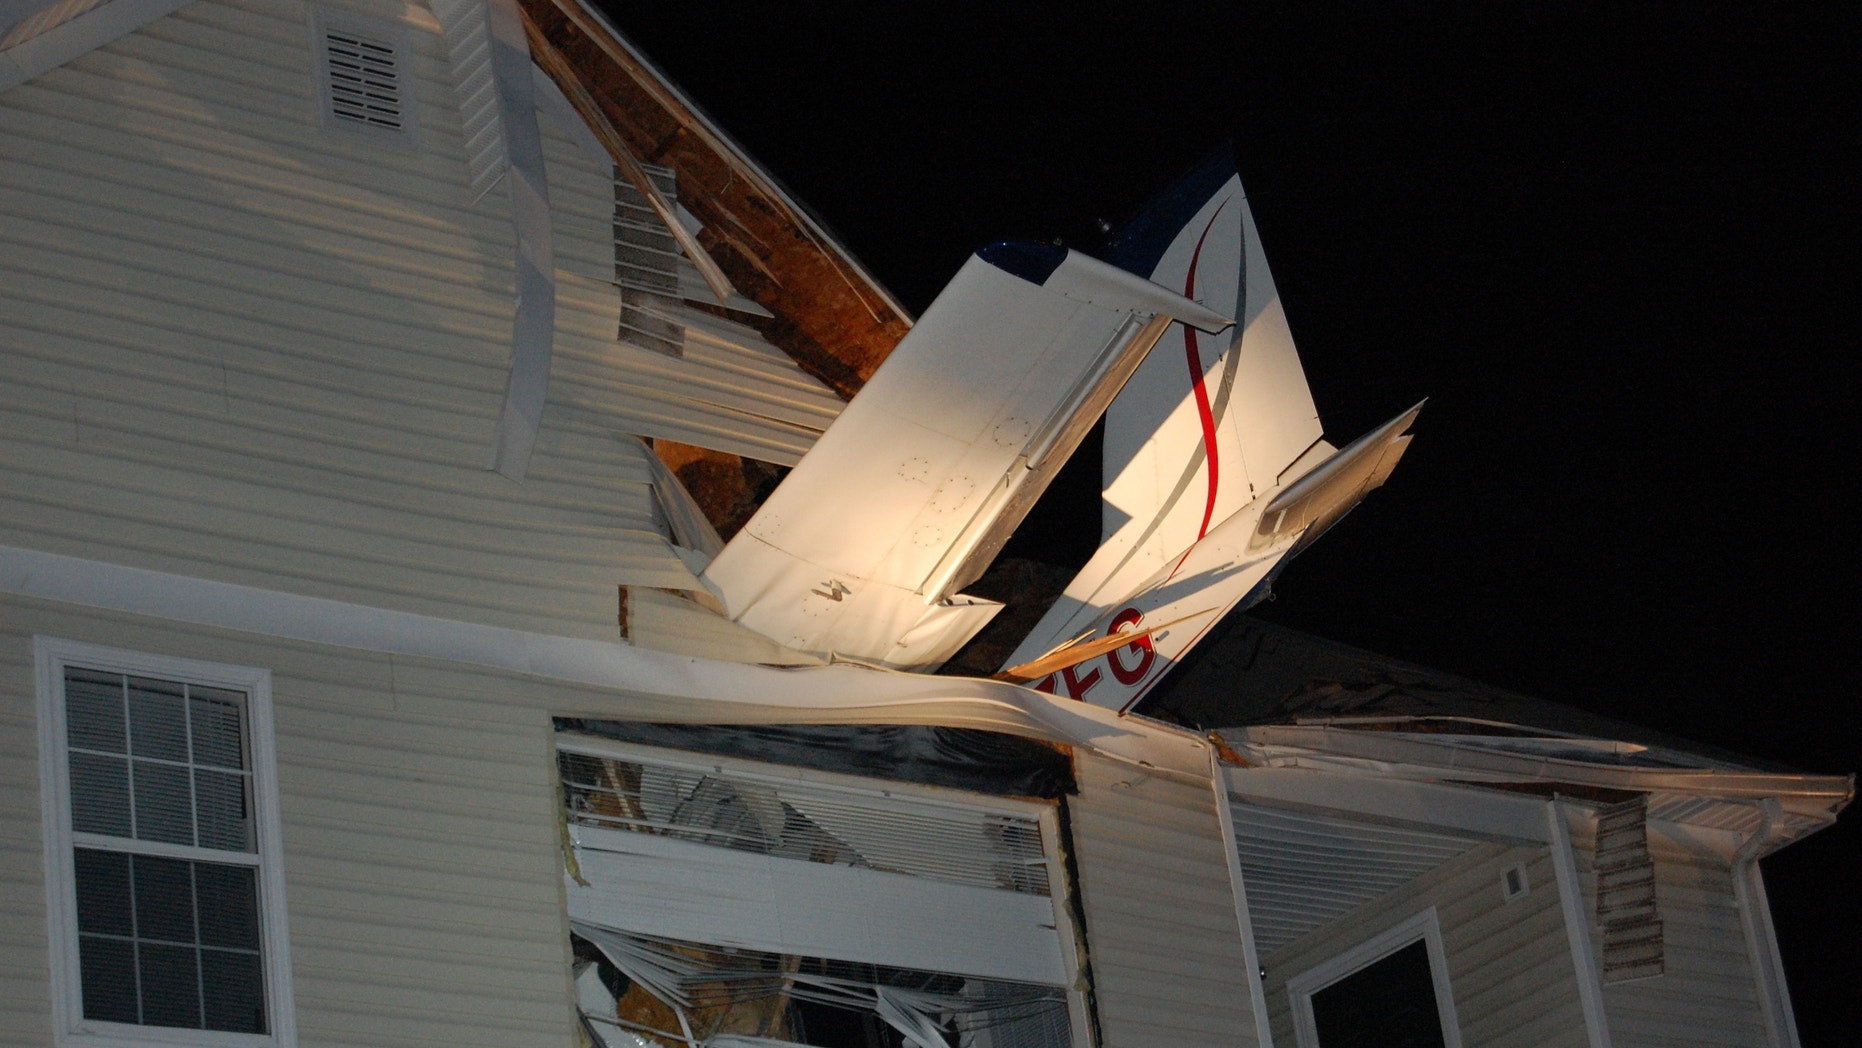 May 31, 2013: This handout photo provided by the Virginia State Police shows a small plane crashed into the living room of an apartment in Herndon, Va. Capt. Willie Bailey with Fairfax County Fire and Rescue in Virginia says the plane ran out of fuel early Friday and crashed, injuring two people  one in the apartment and one in the Cessna 177B.